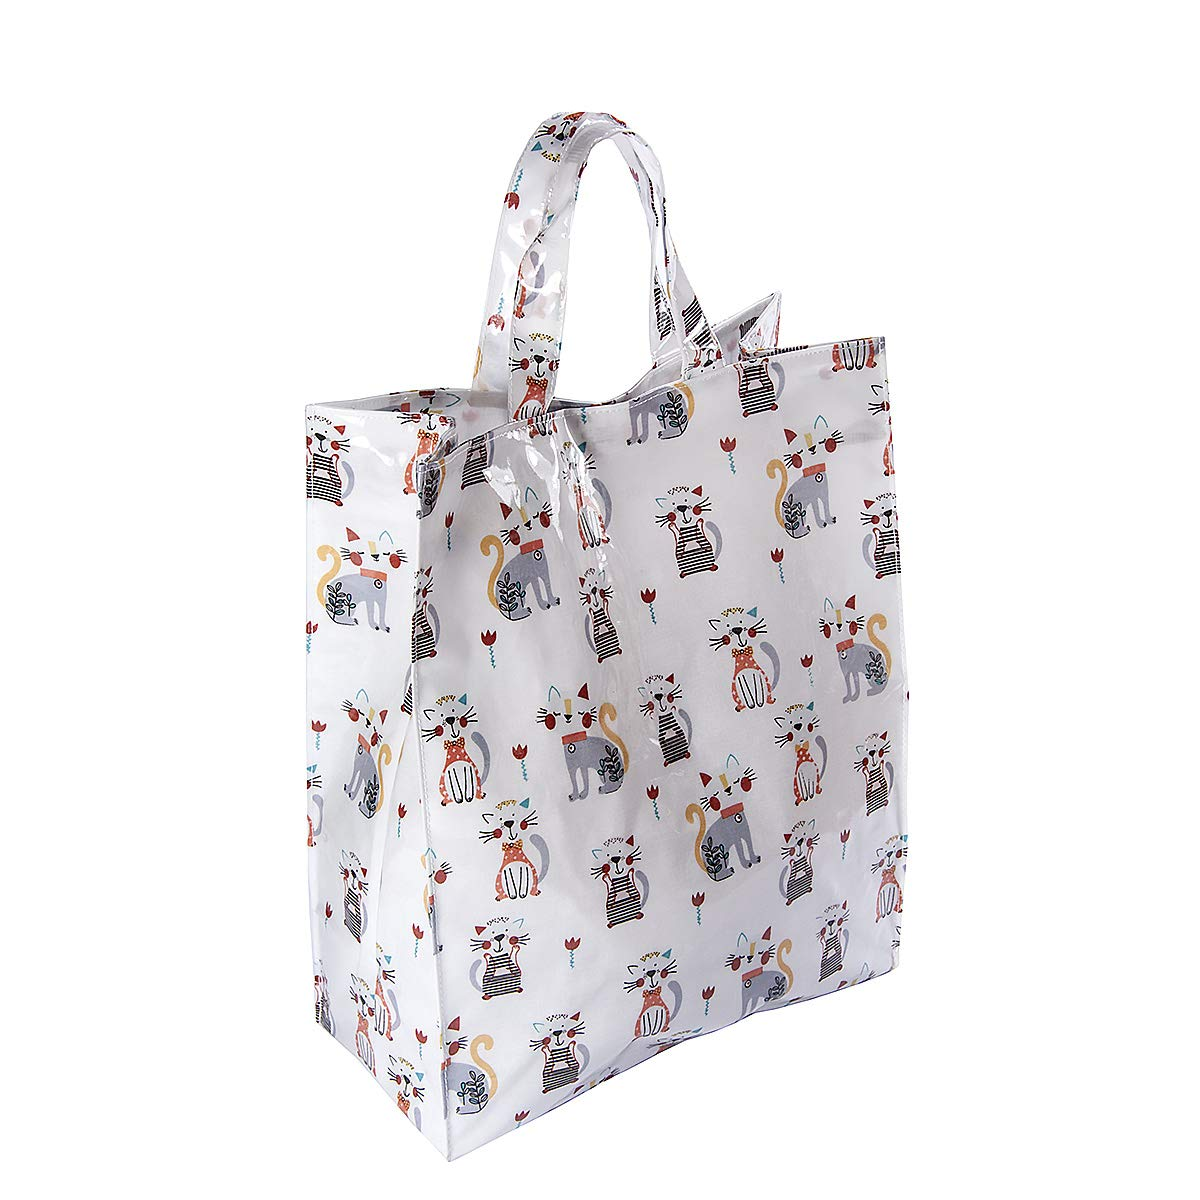 Dalmatian Reusable Cotton Shopping Bag with Gusset and Long Handles Perfect Gift